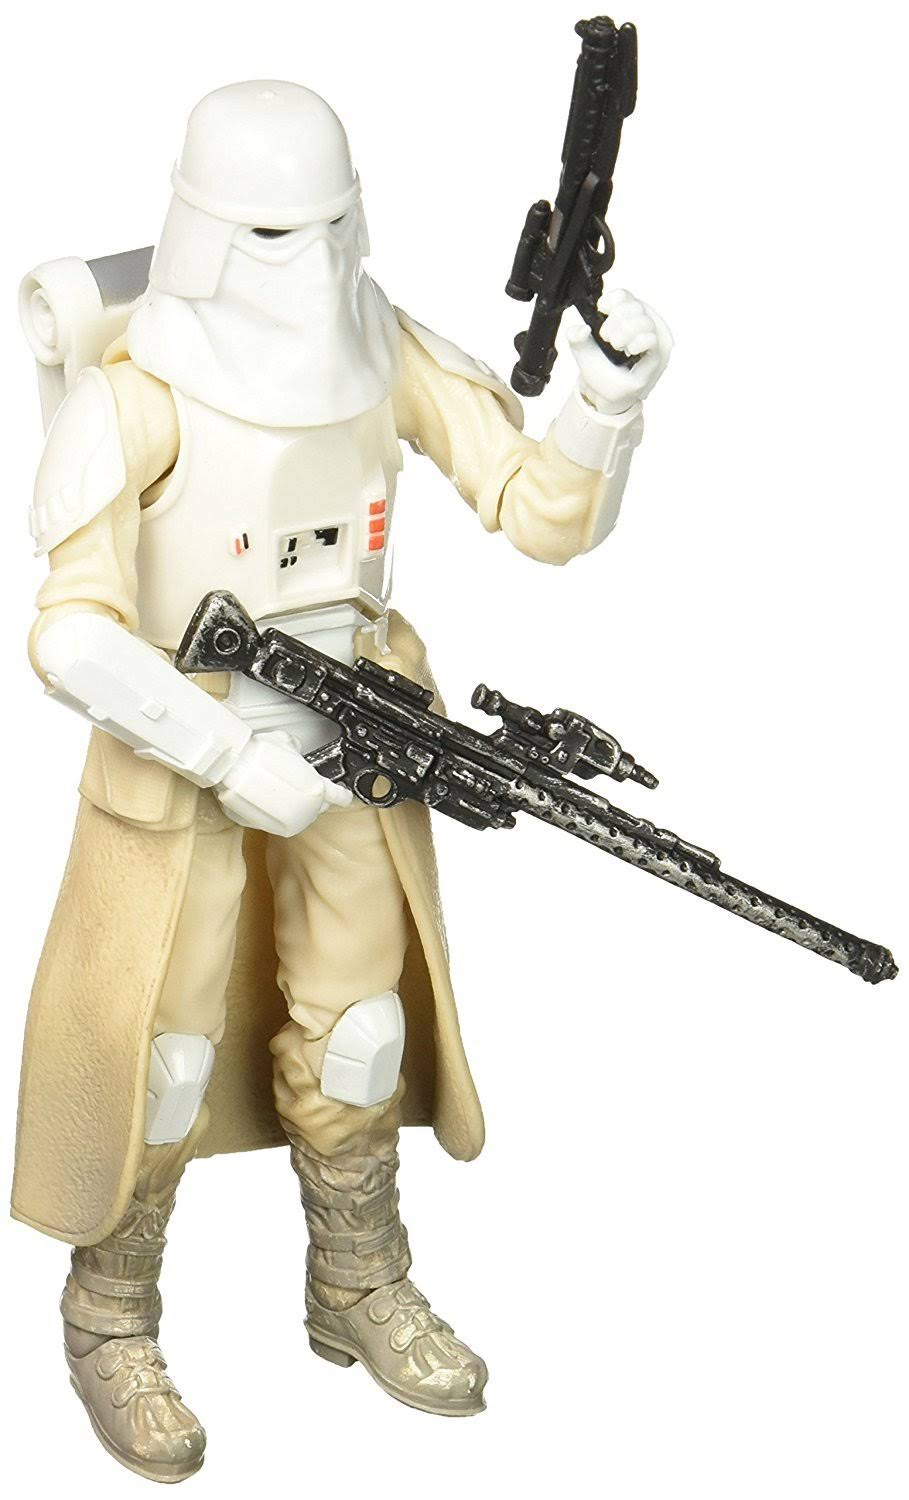 Hasbro Star Wars The Black Series Action Figure - Snowtrooper